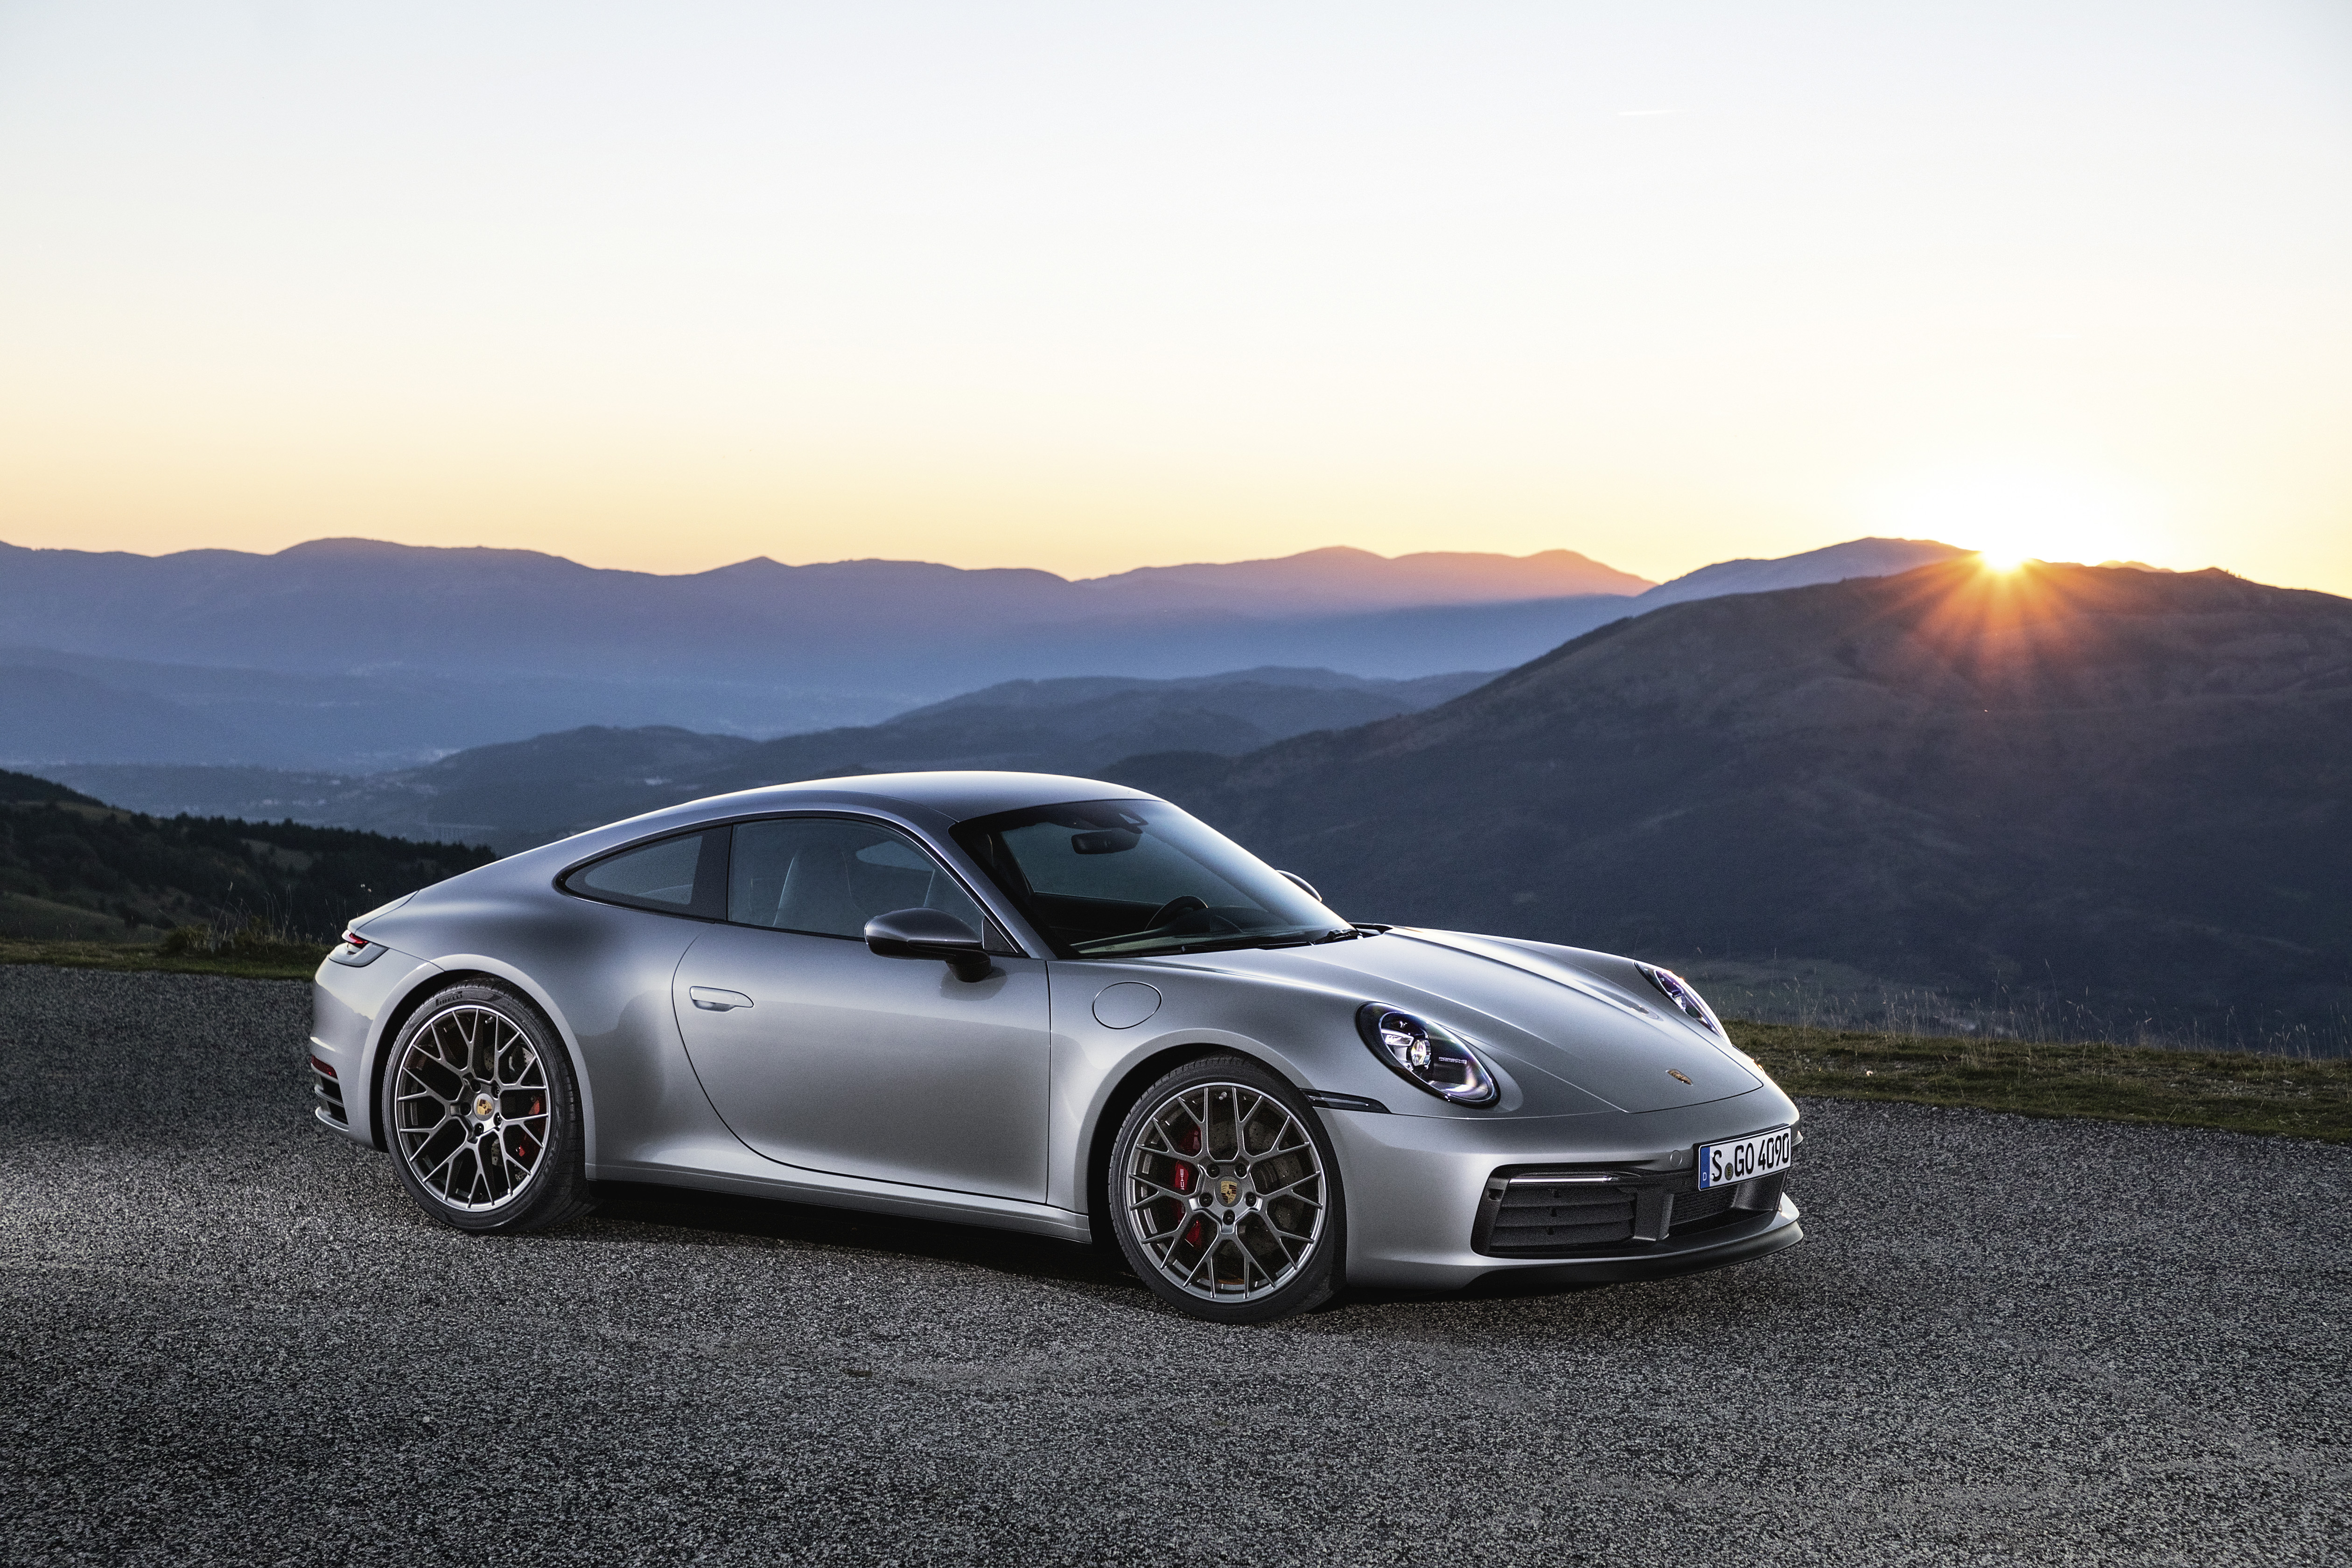 The New 2020 Porsche 911 Carrera S And 4s More Powerful More Dynamic Unmistakably A 911 Dr Ing H C F Porsche Ag Press Database